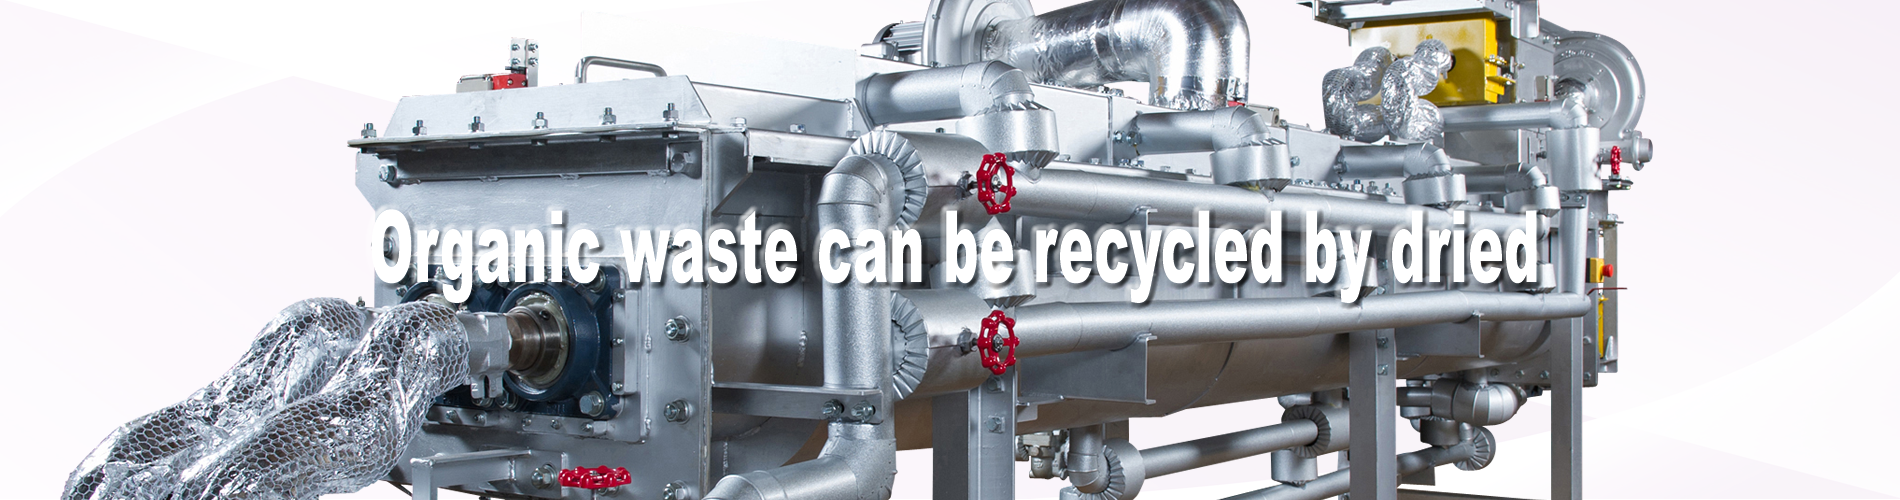 Organic waste can be recycled by being dried